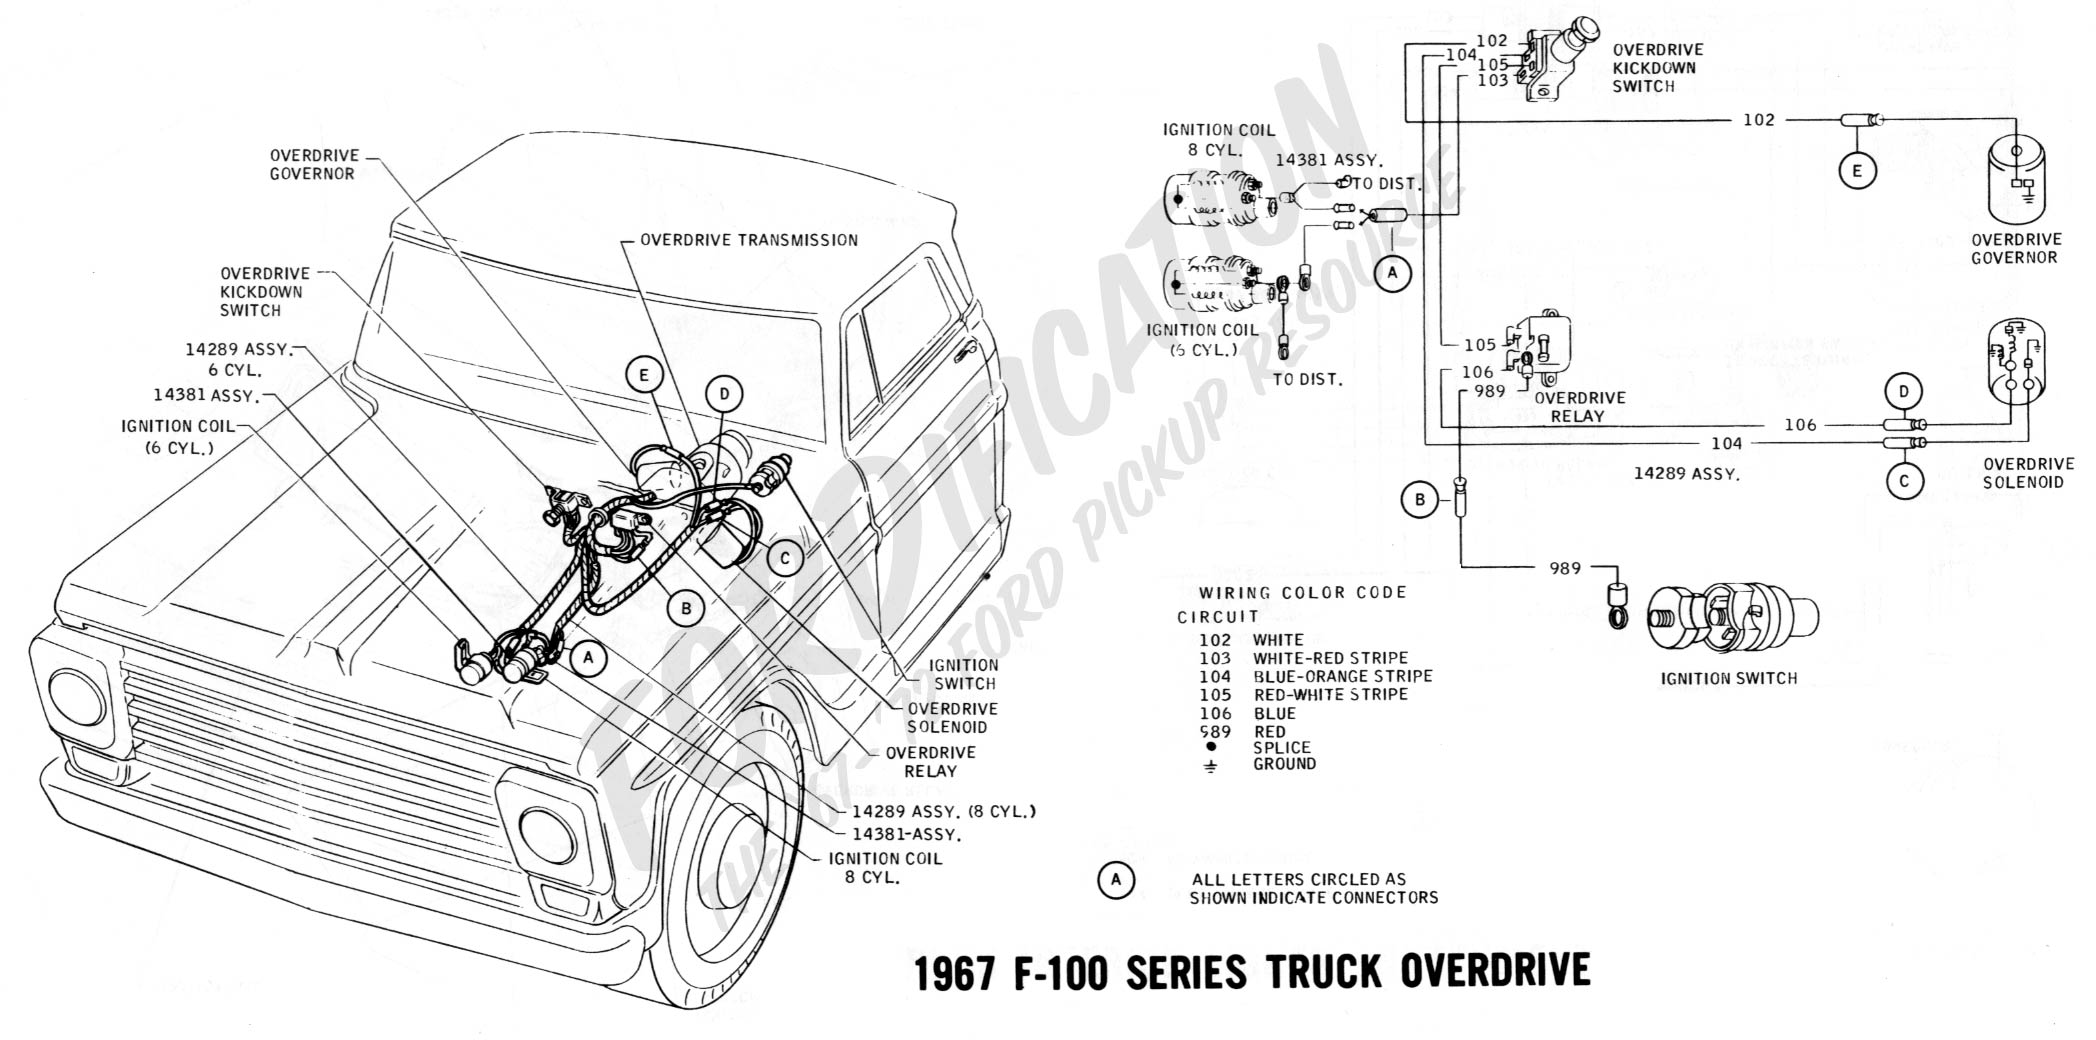 wiring 1967overdrive2 1977 chevy truck steering column diagram wiring diagram simonand Basic Electrical Wiring Diagrams at fashall.co